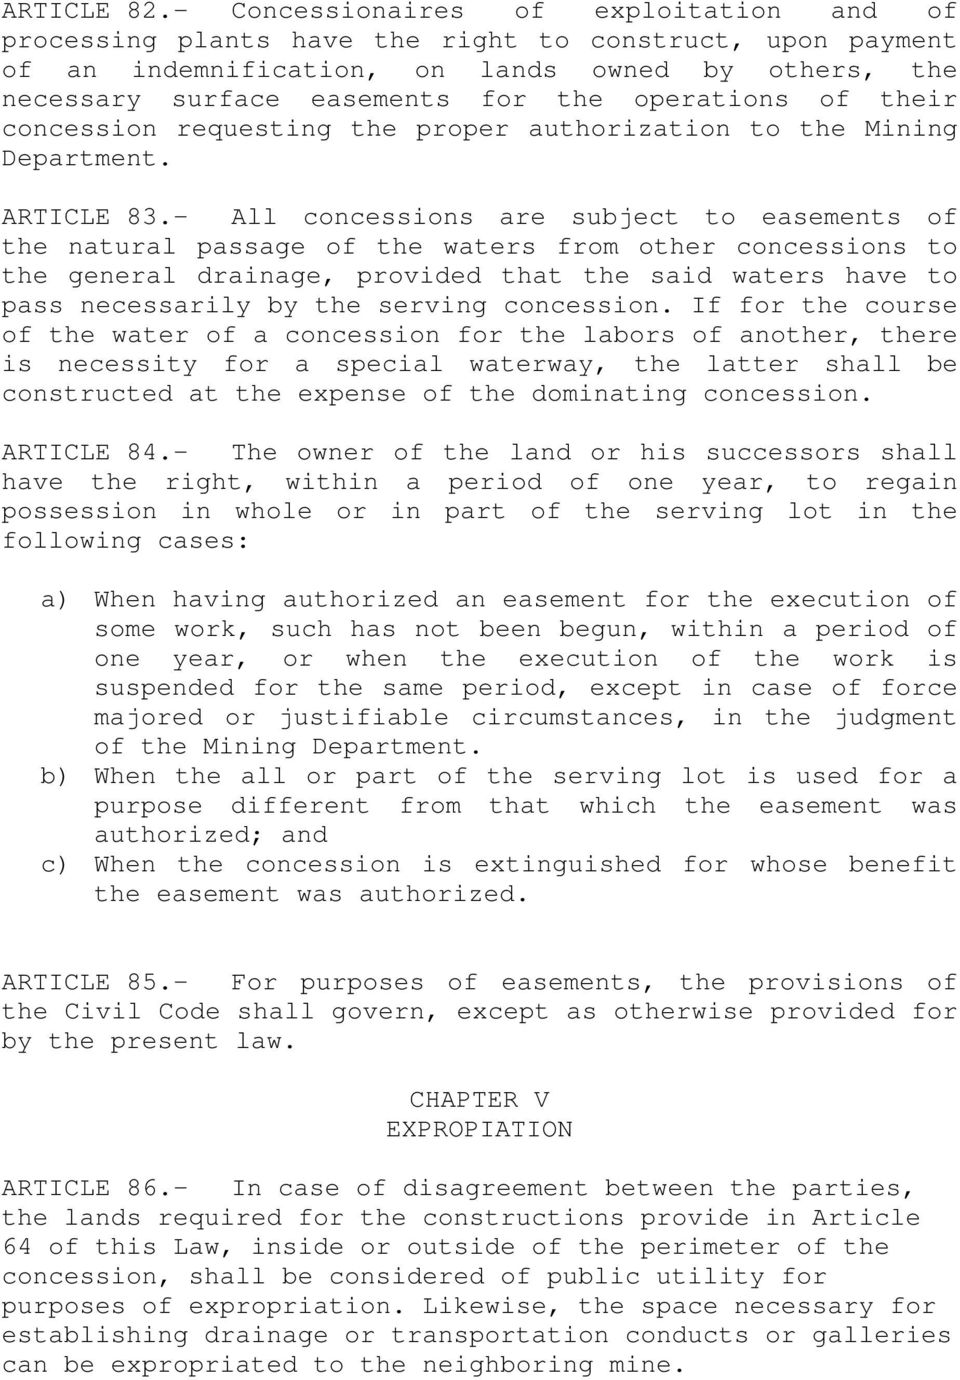 operations of their concession requesting the proper authorization to the Mining Department. ARTICLE 83.